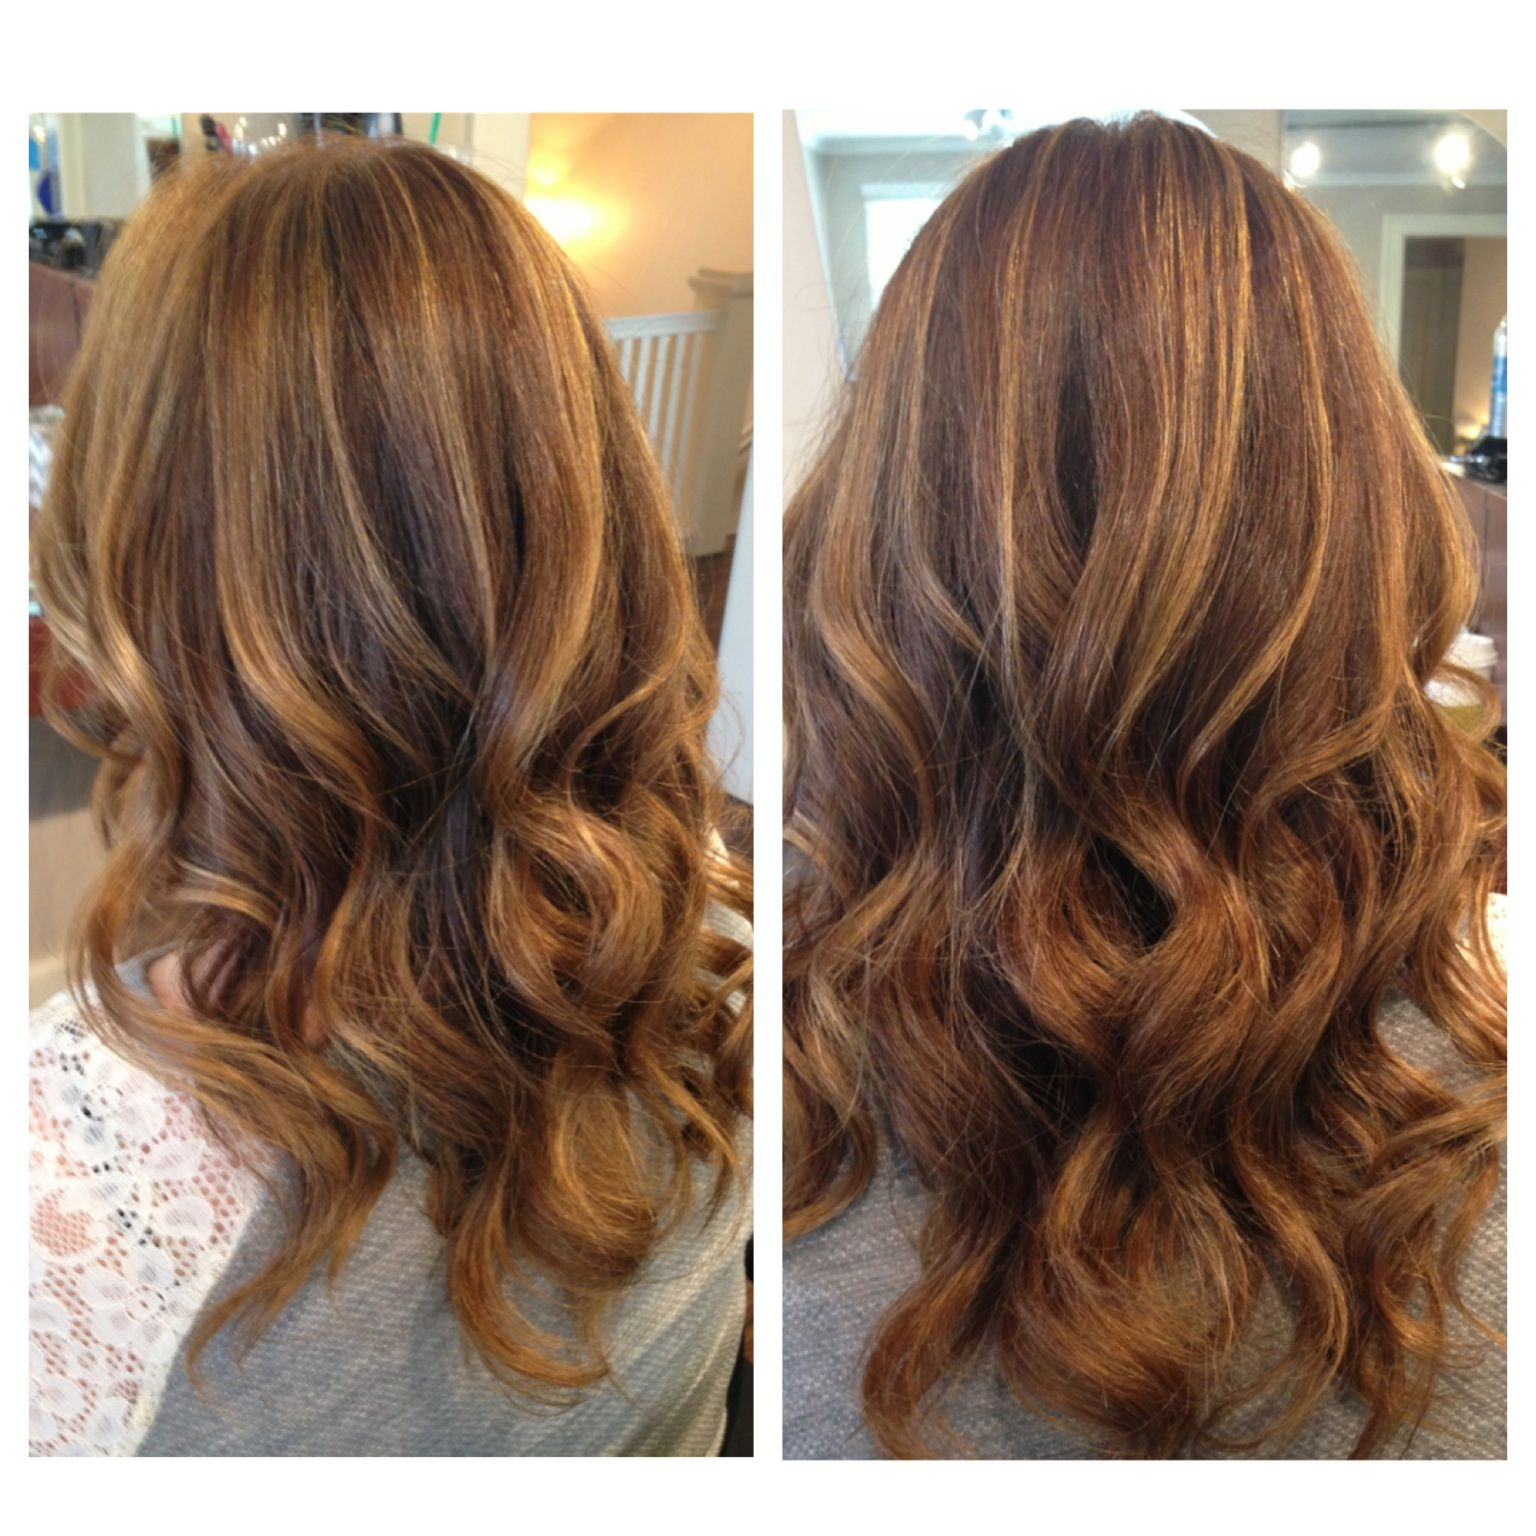 Golden Copper And Golden Blonde Highlights All With Balayage Throughout A Natural Brunette For The Per Colored Hair Tips Balayage Hair Copper Blonde Highlights